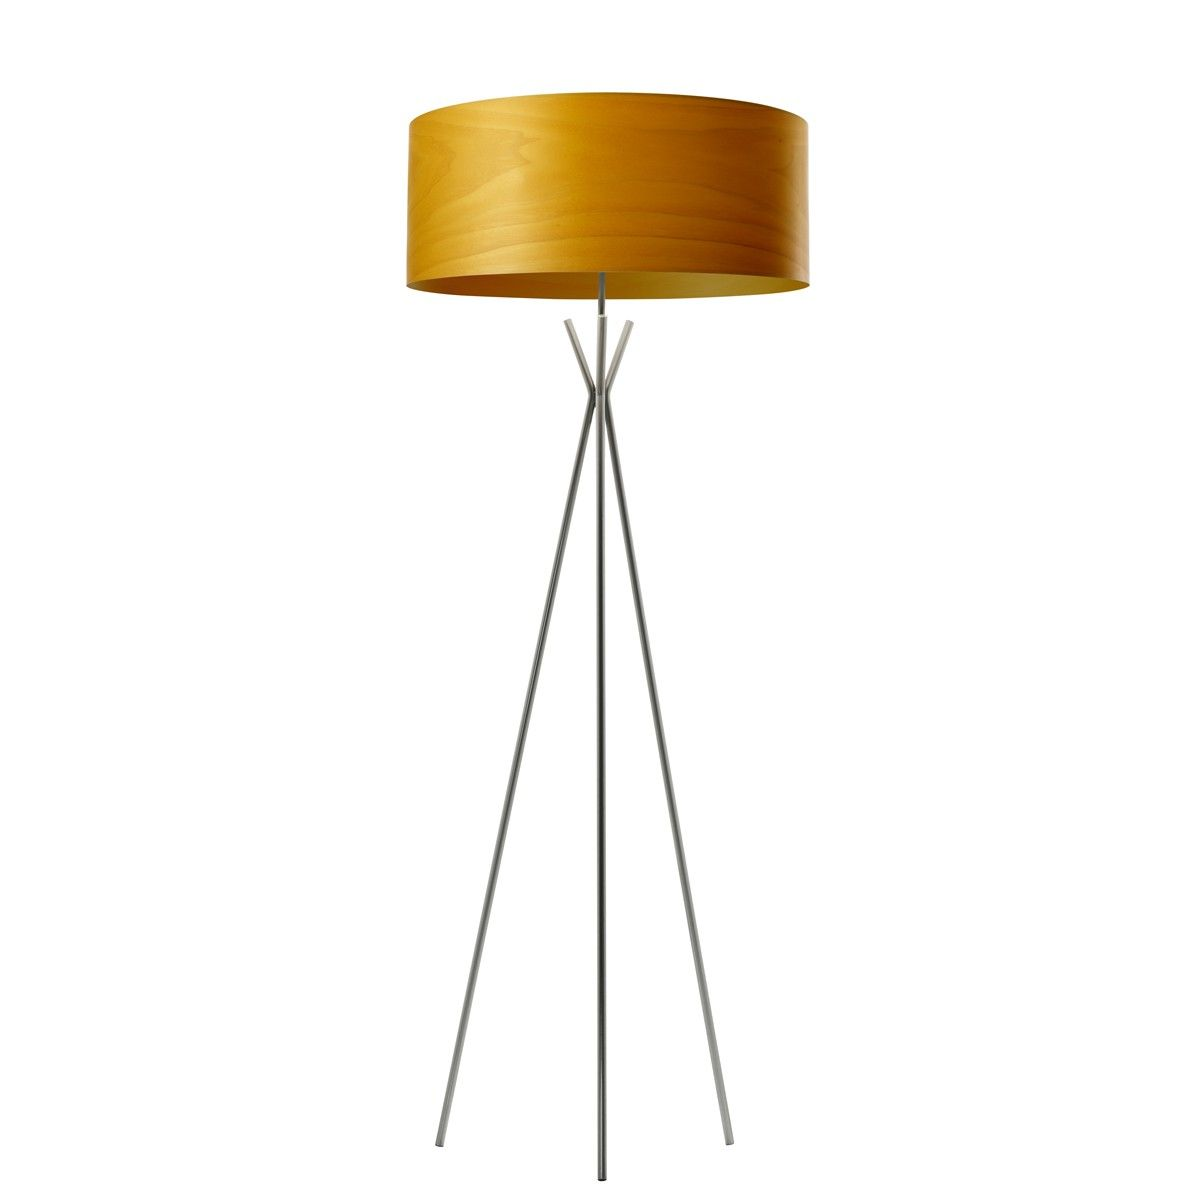 Kronleuchter Weiss Gold Retro Stehlampe Led Bad Wandleuchte